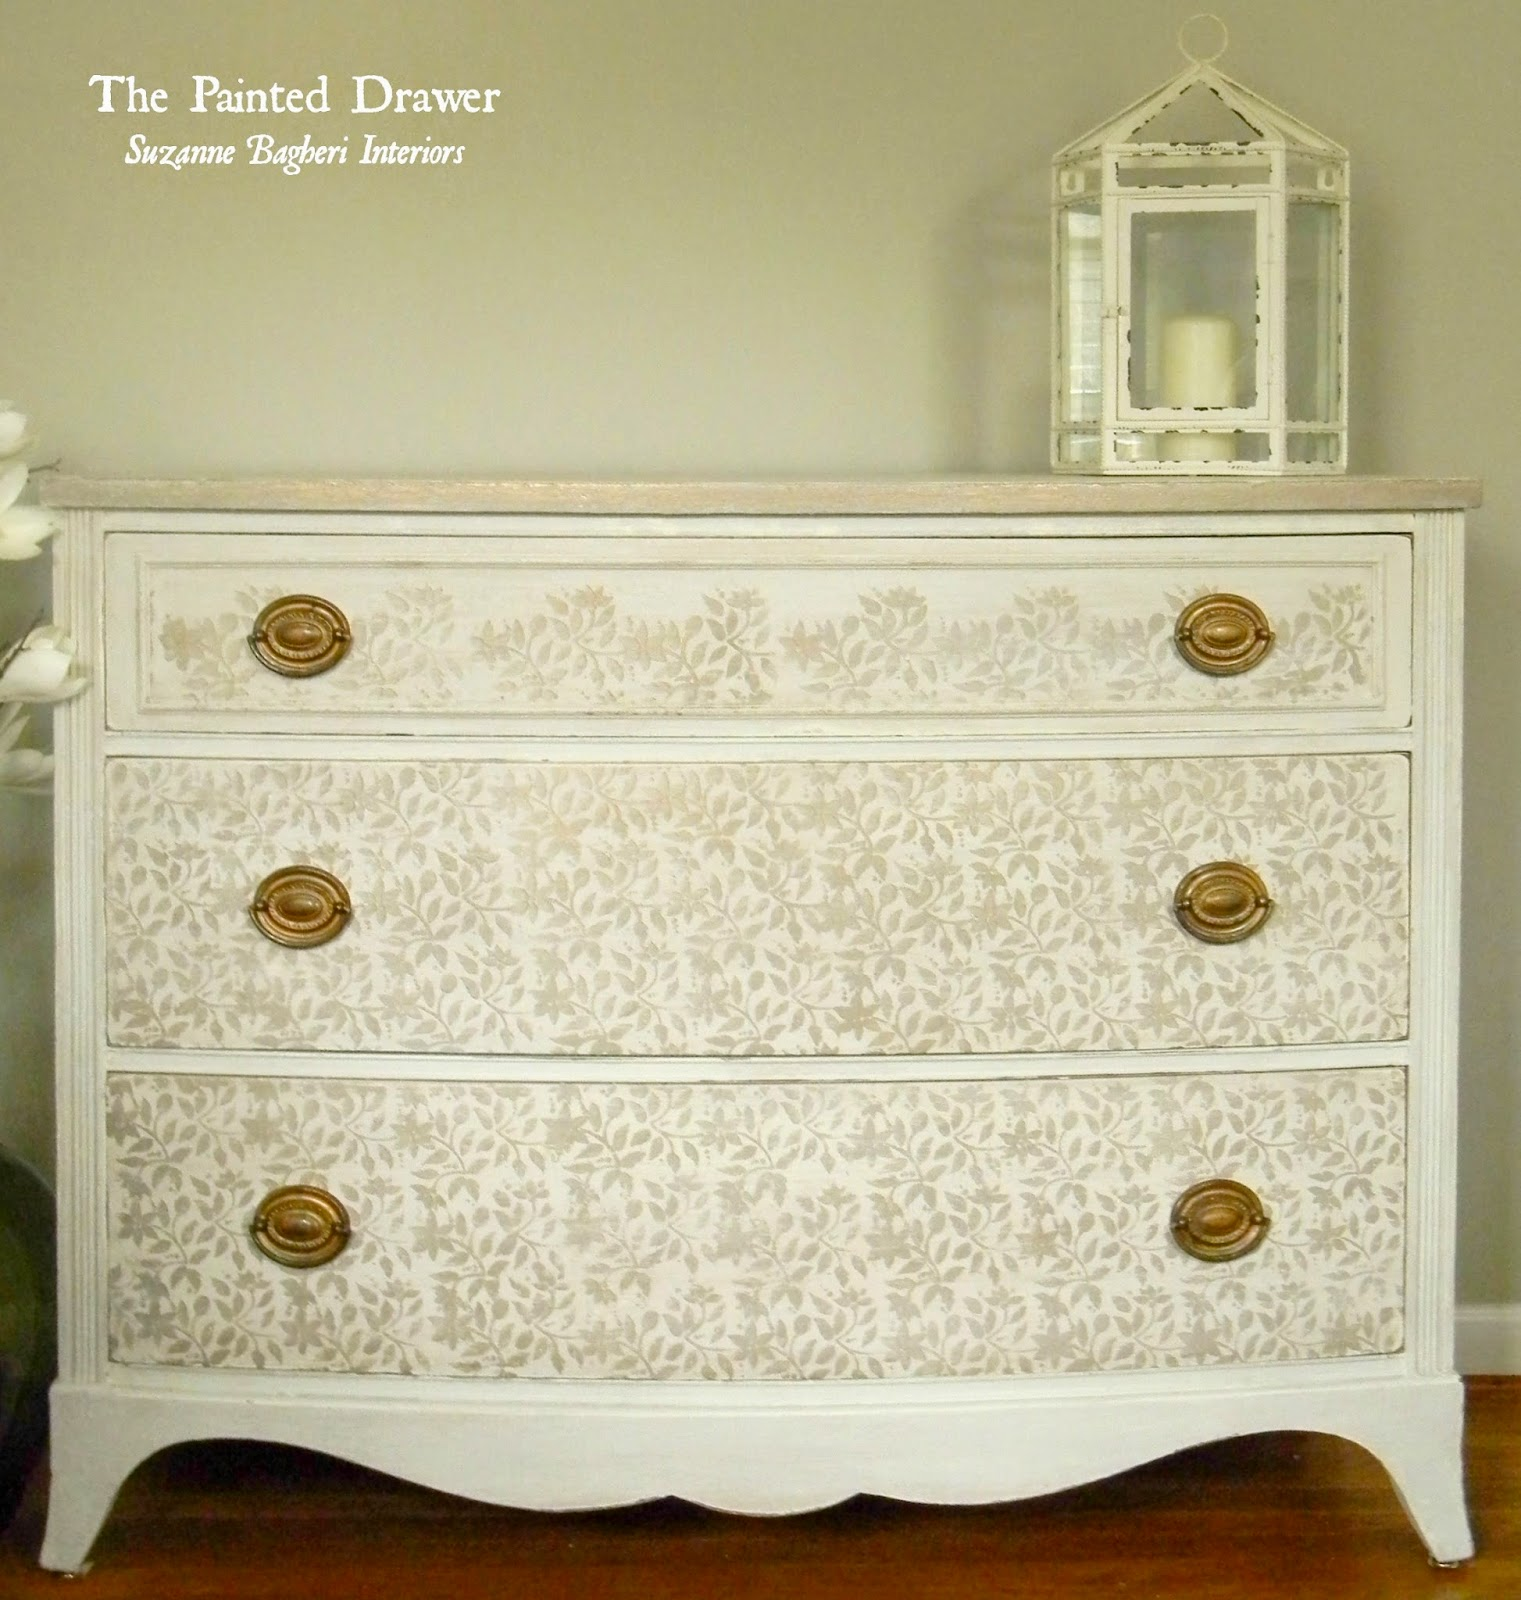 Suzanne from the Painted Drawer creates the loveliest painted treasures, including this stenciled antique dresser.